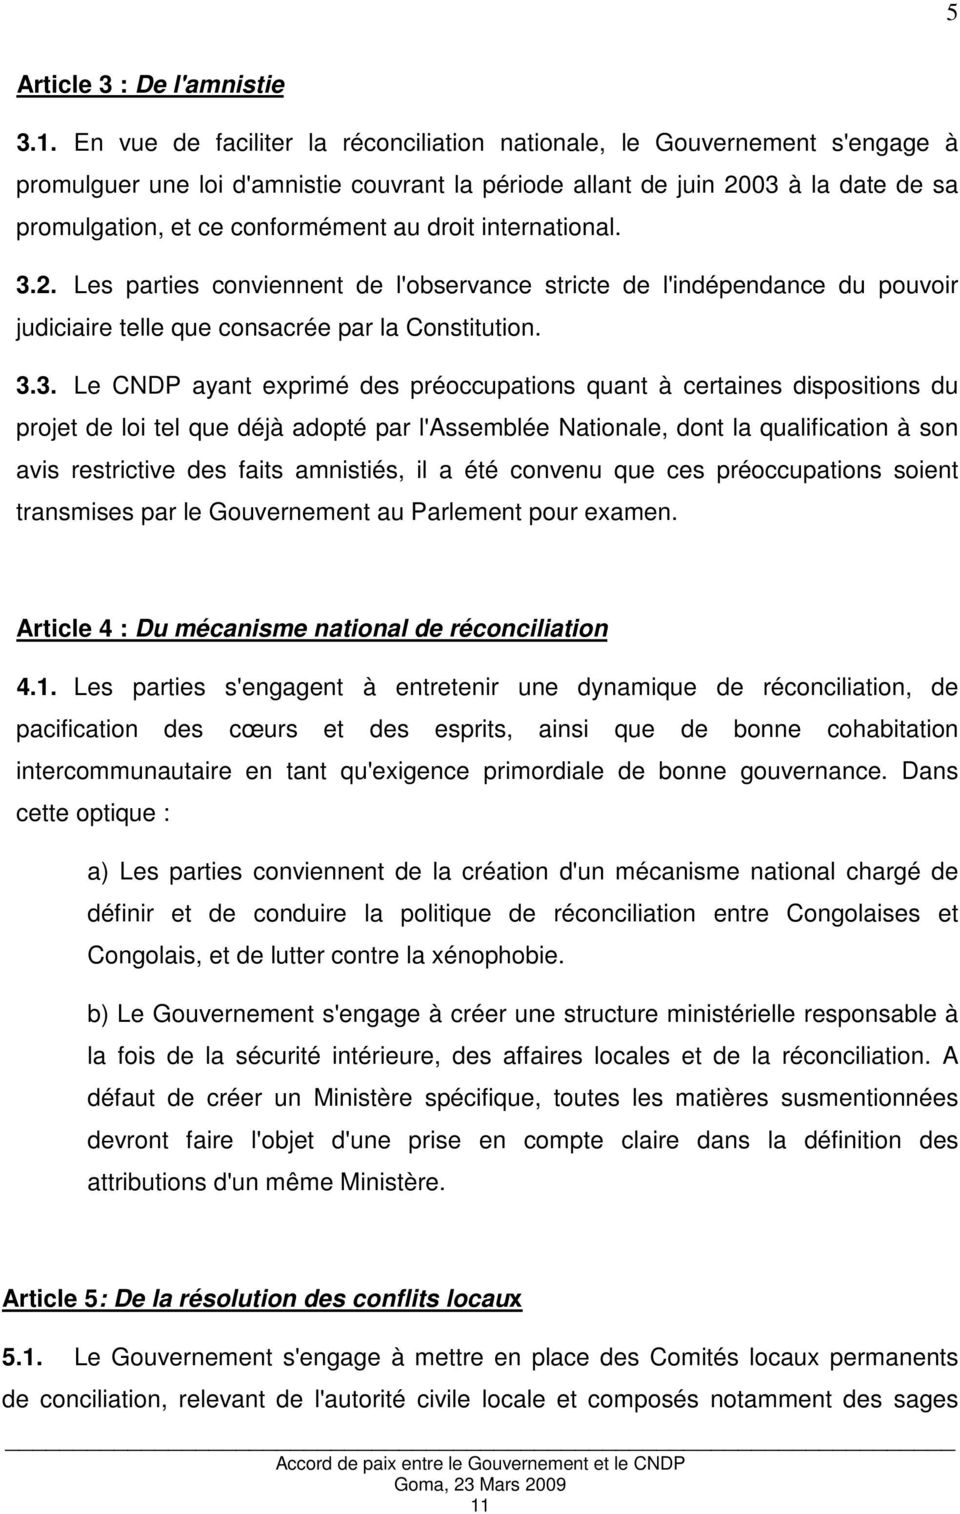 droit international. 3.